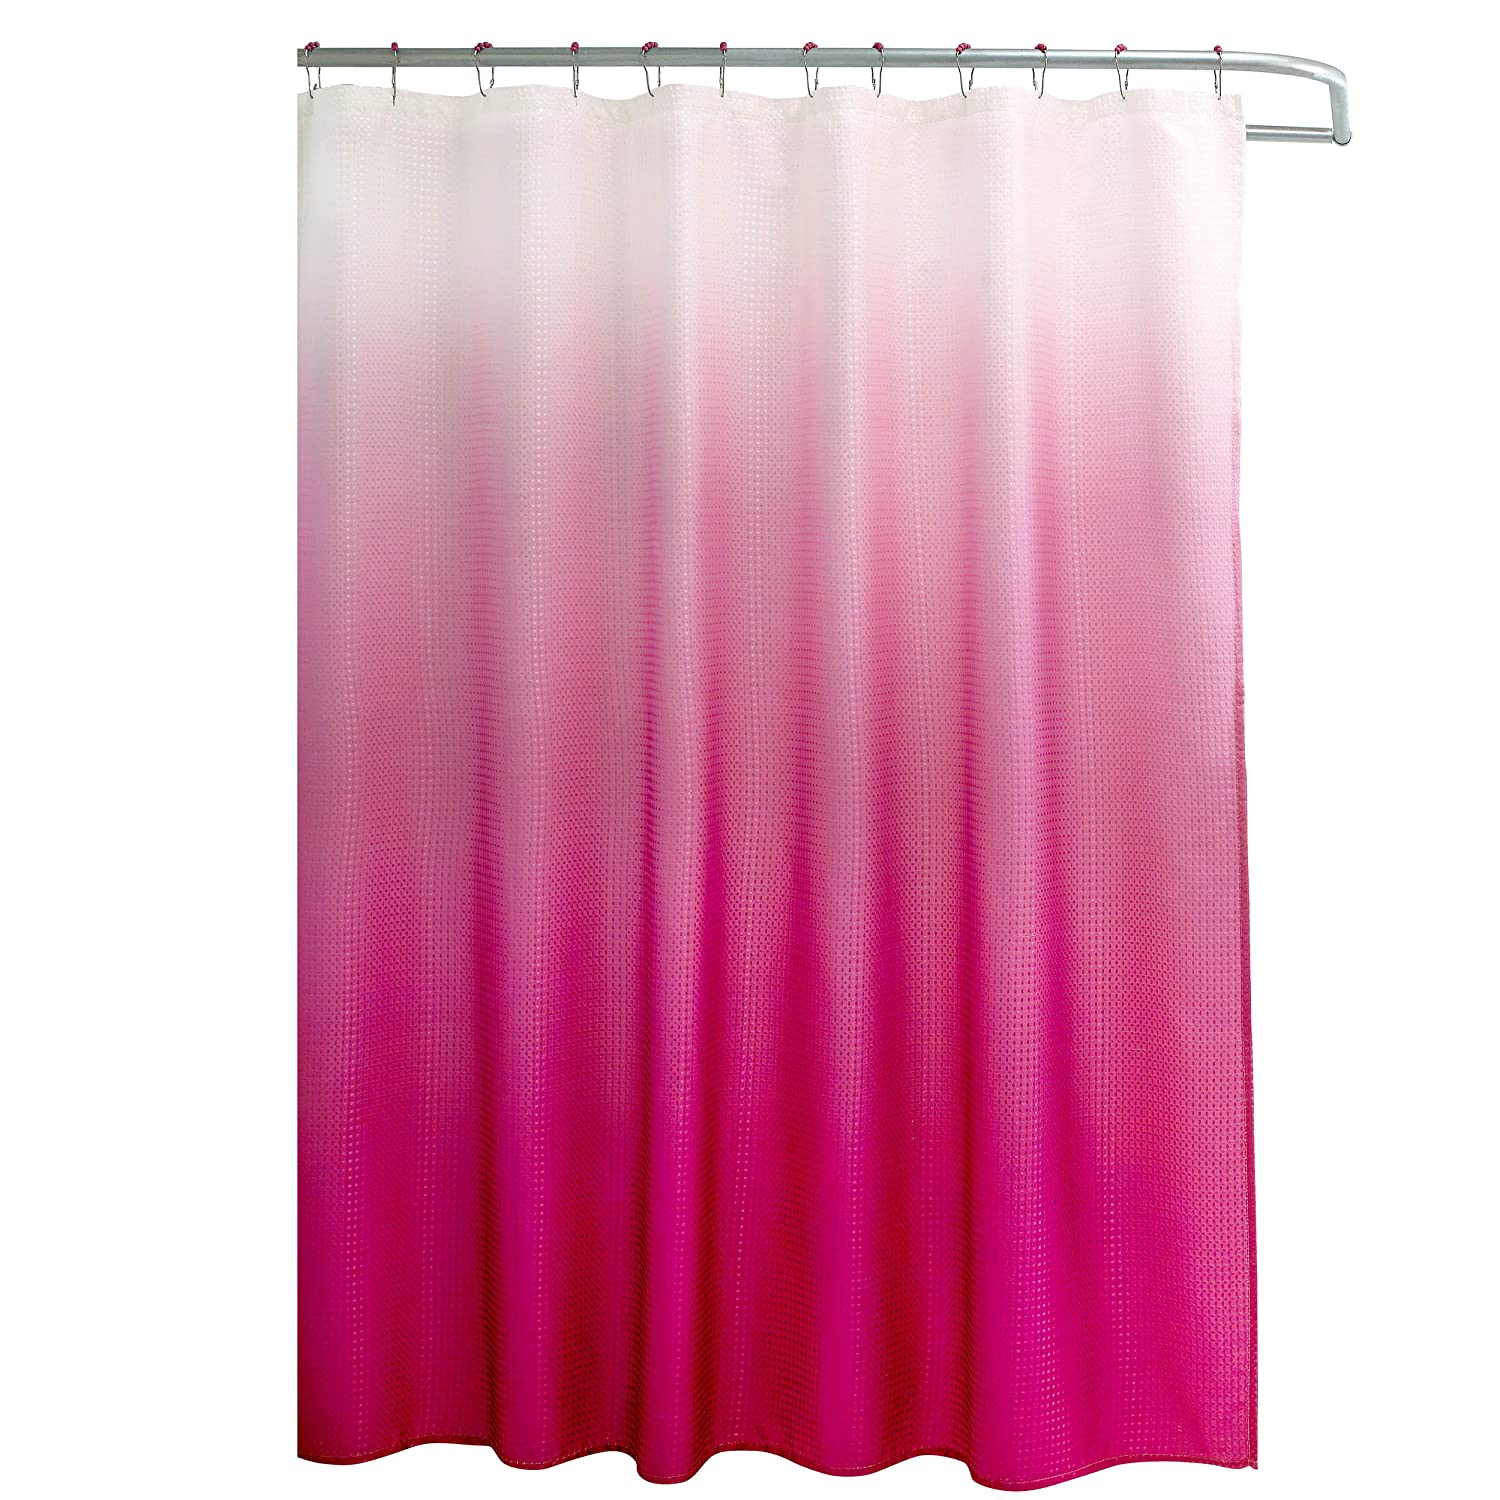 Light pink ruffle shower curtain - Amazon Com Creative Home Ideas Ombre Textured Shower Curtain With Beaded Rings Fuchsia Home Kitchen